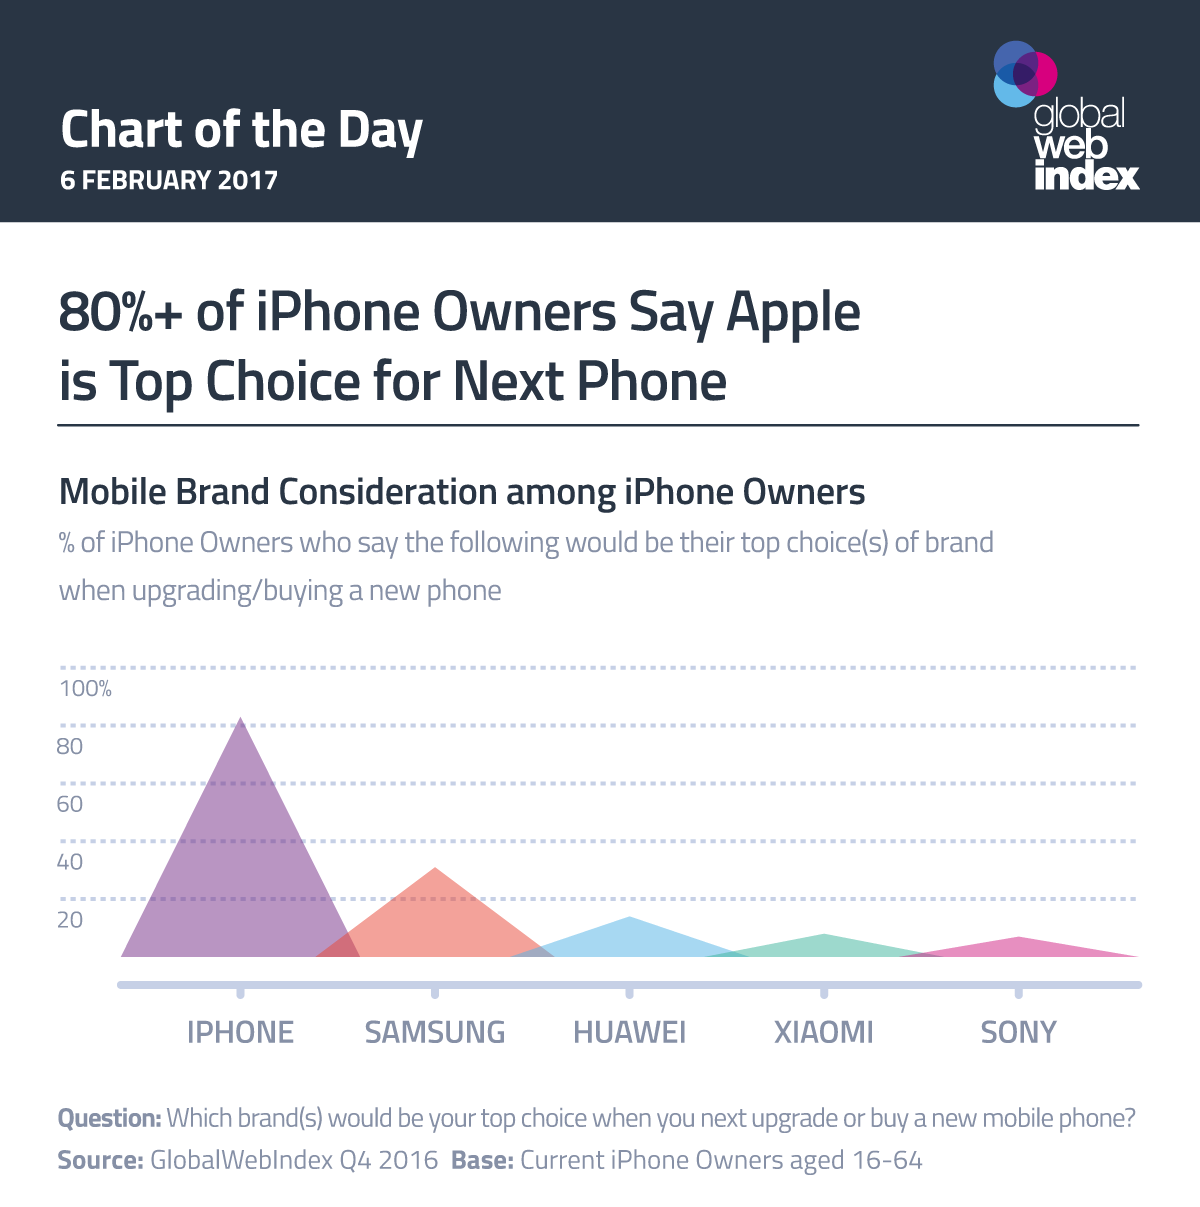 80%+ of iPhone Owners Say Apple is Top Choice for Next Phone